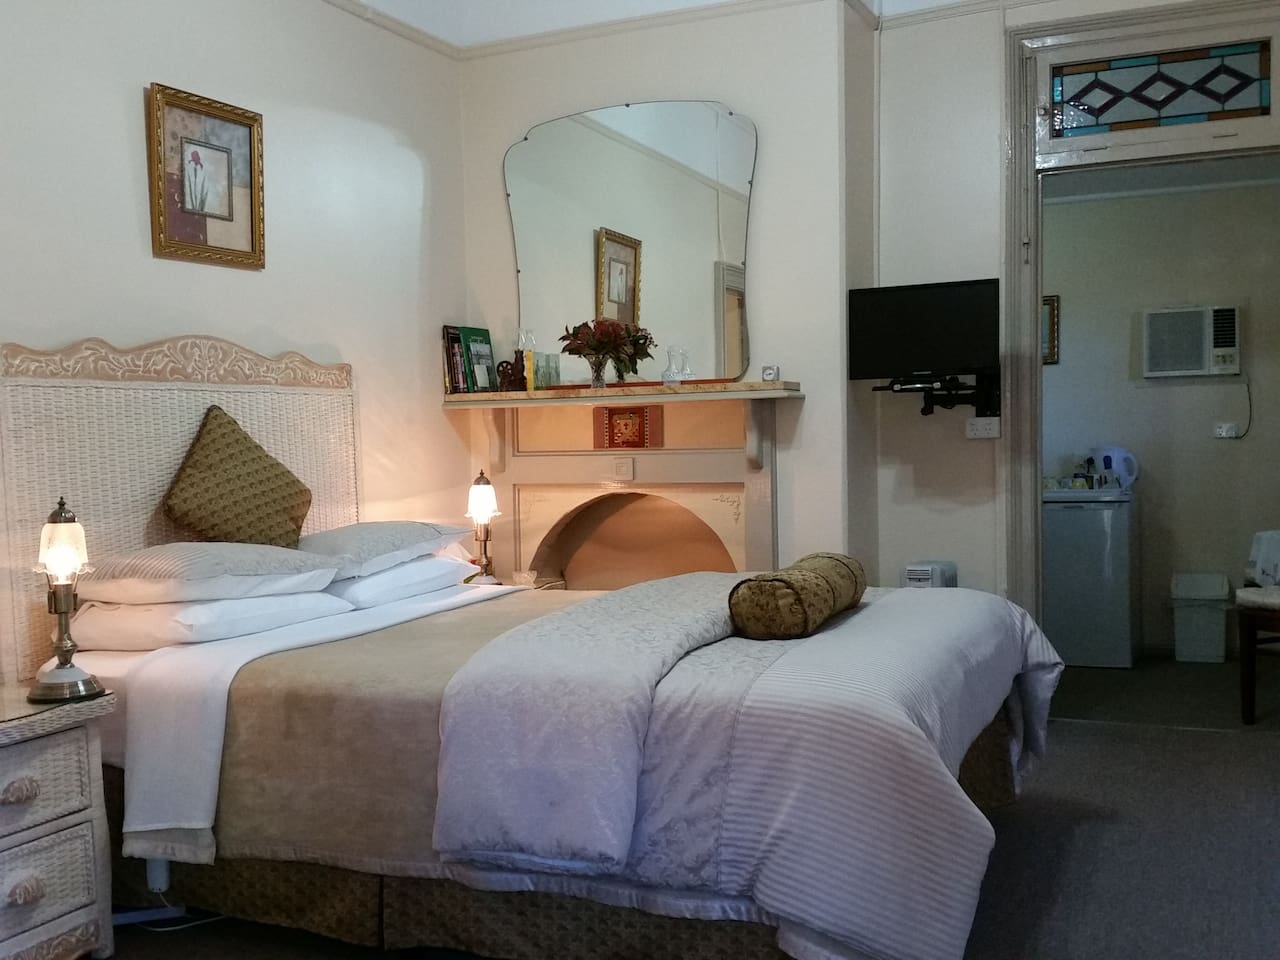 The Queen Victoria Suite - Tumut Accommodation at its finest.